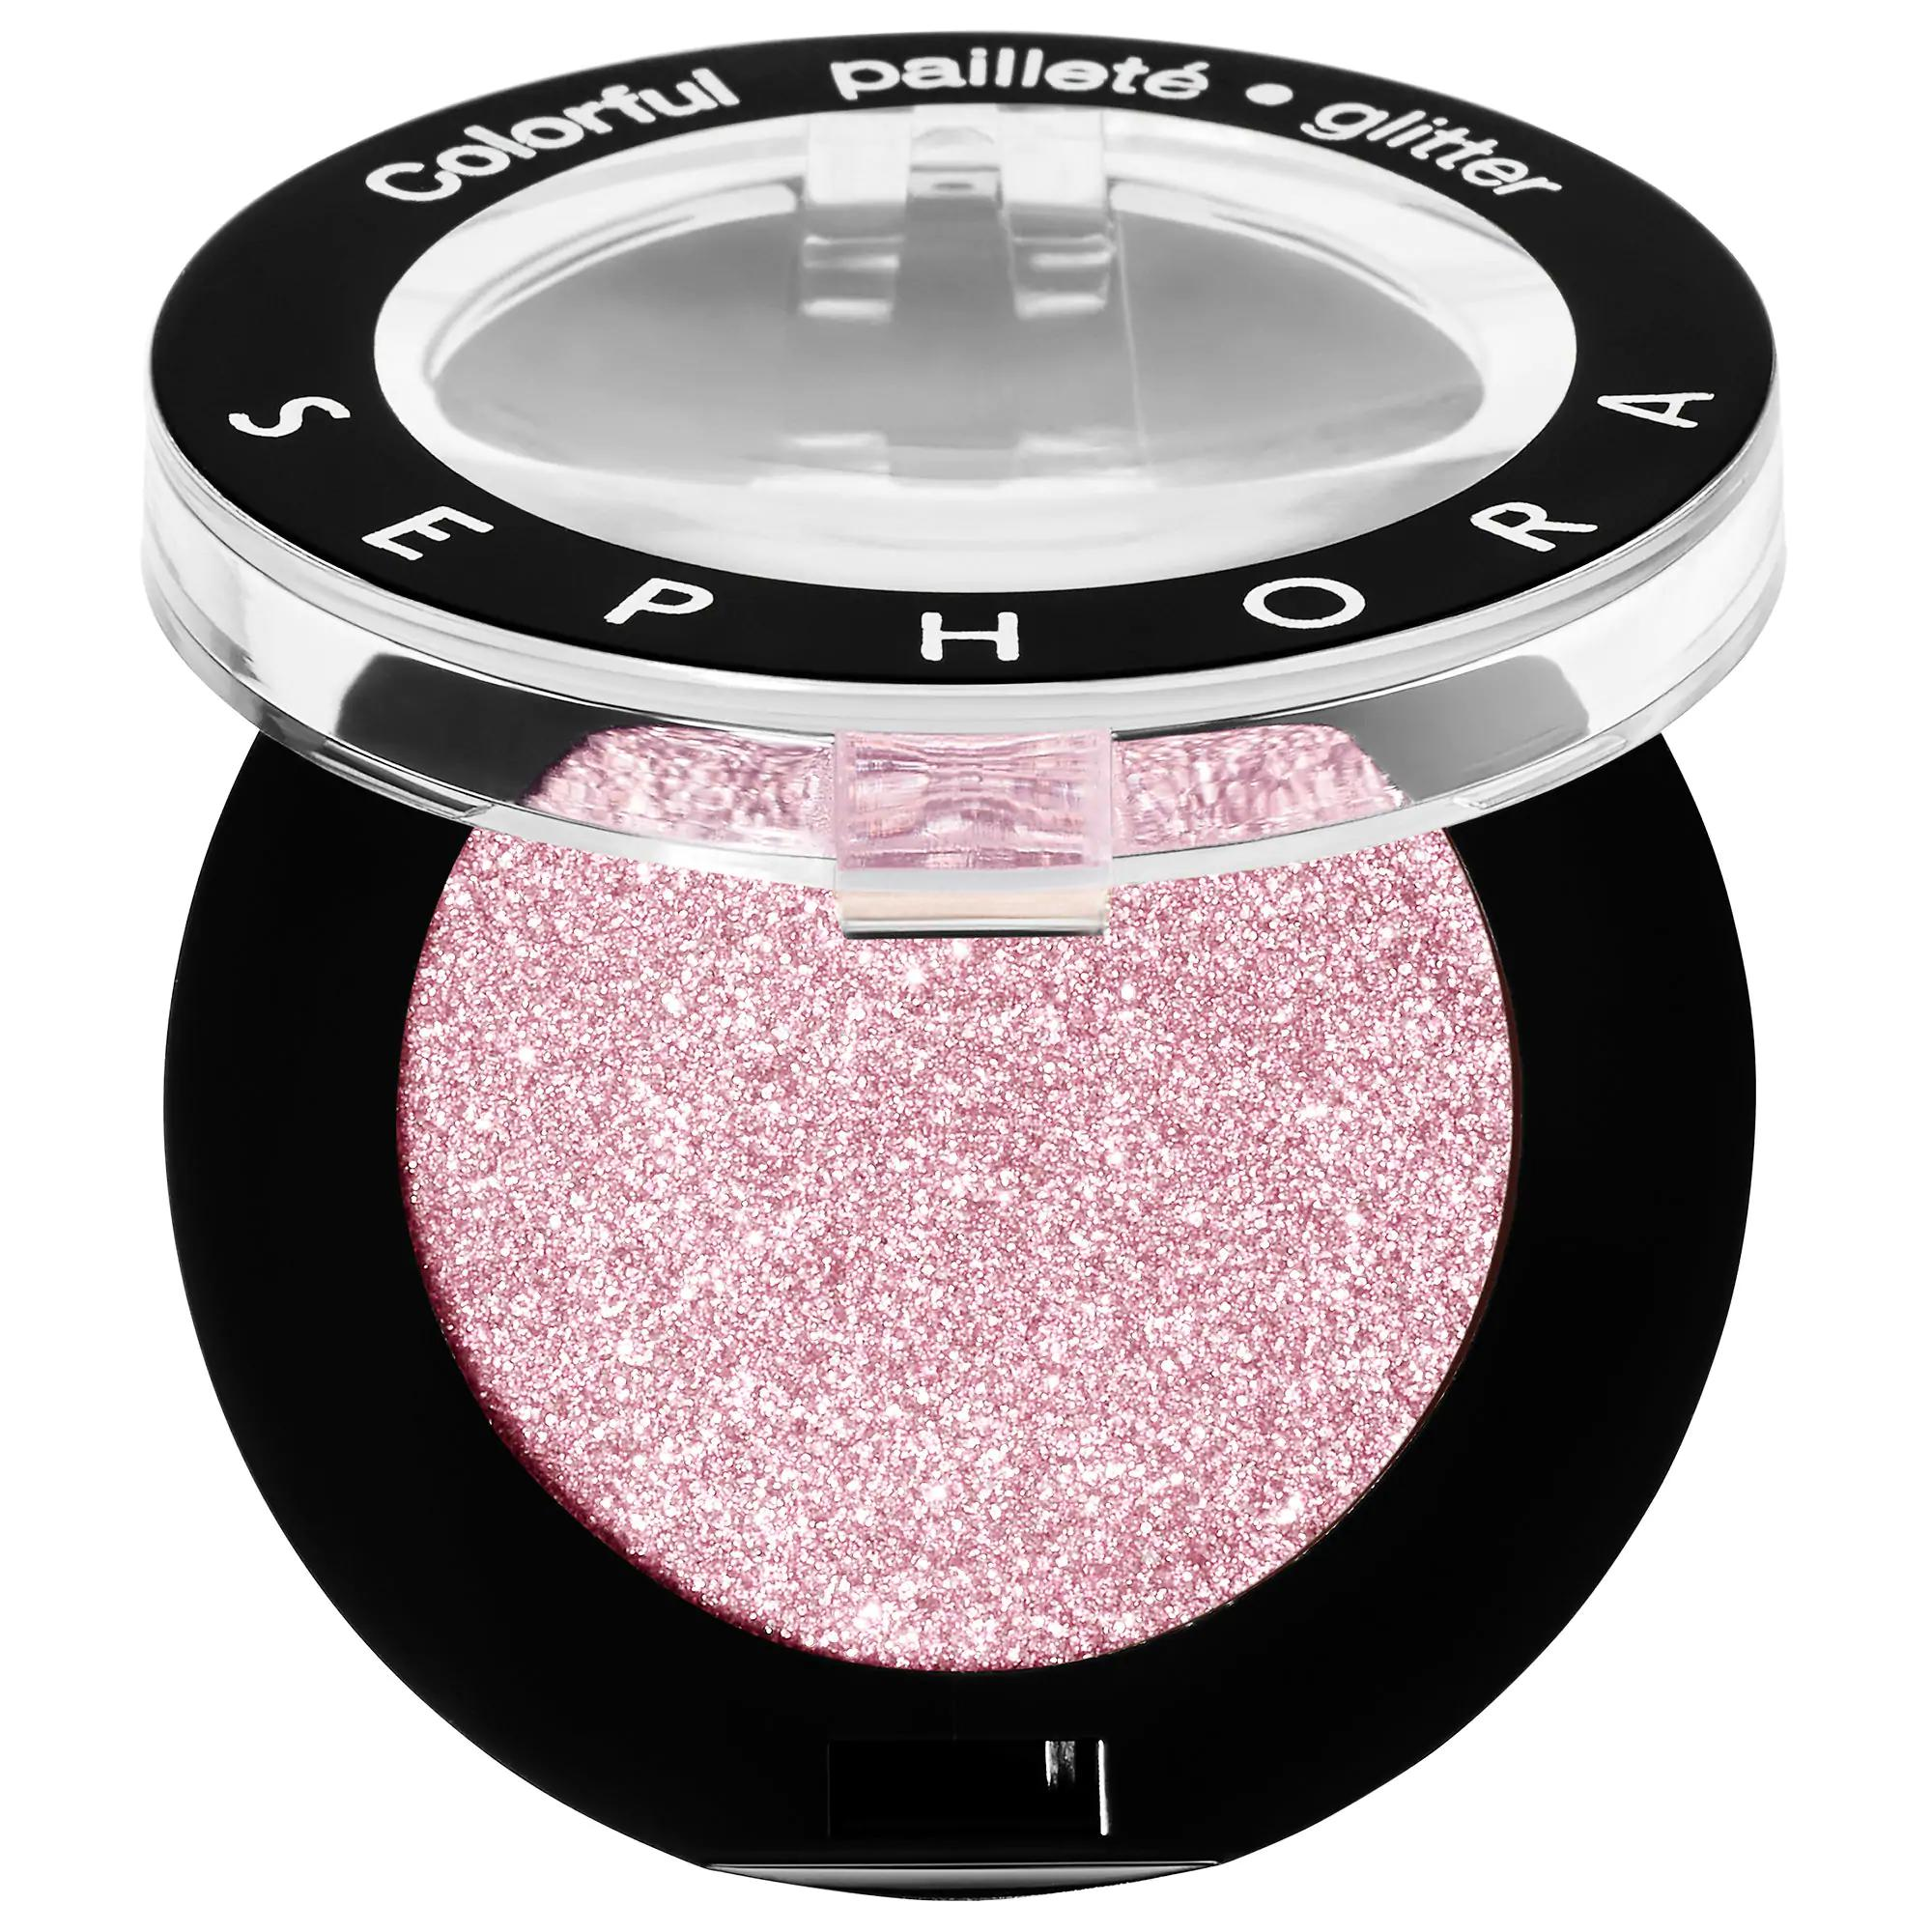 Sephora Colorful Eyeshadow Smell Of Roses No. 258